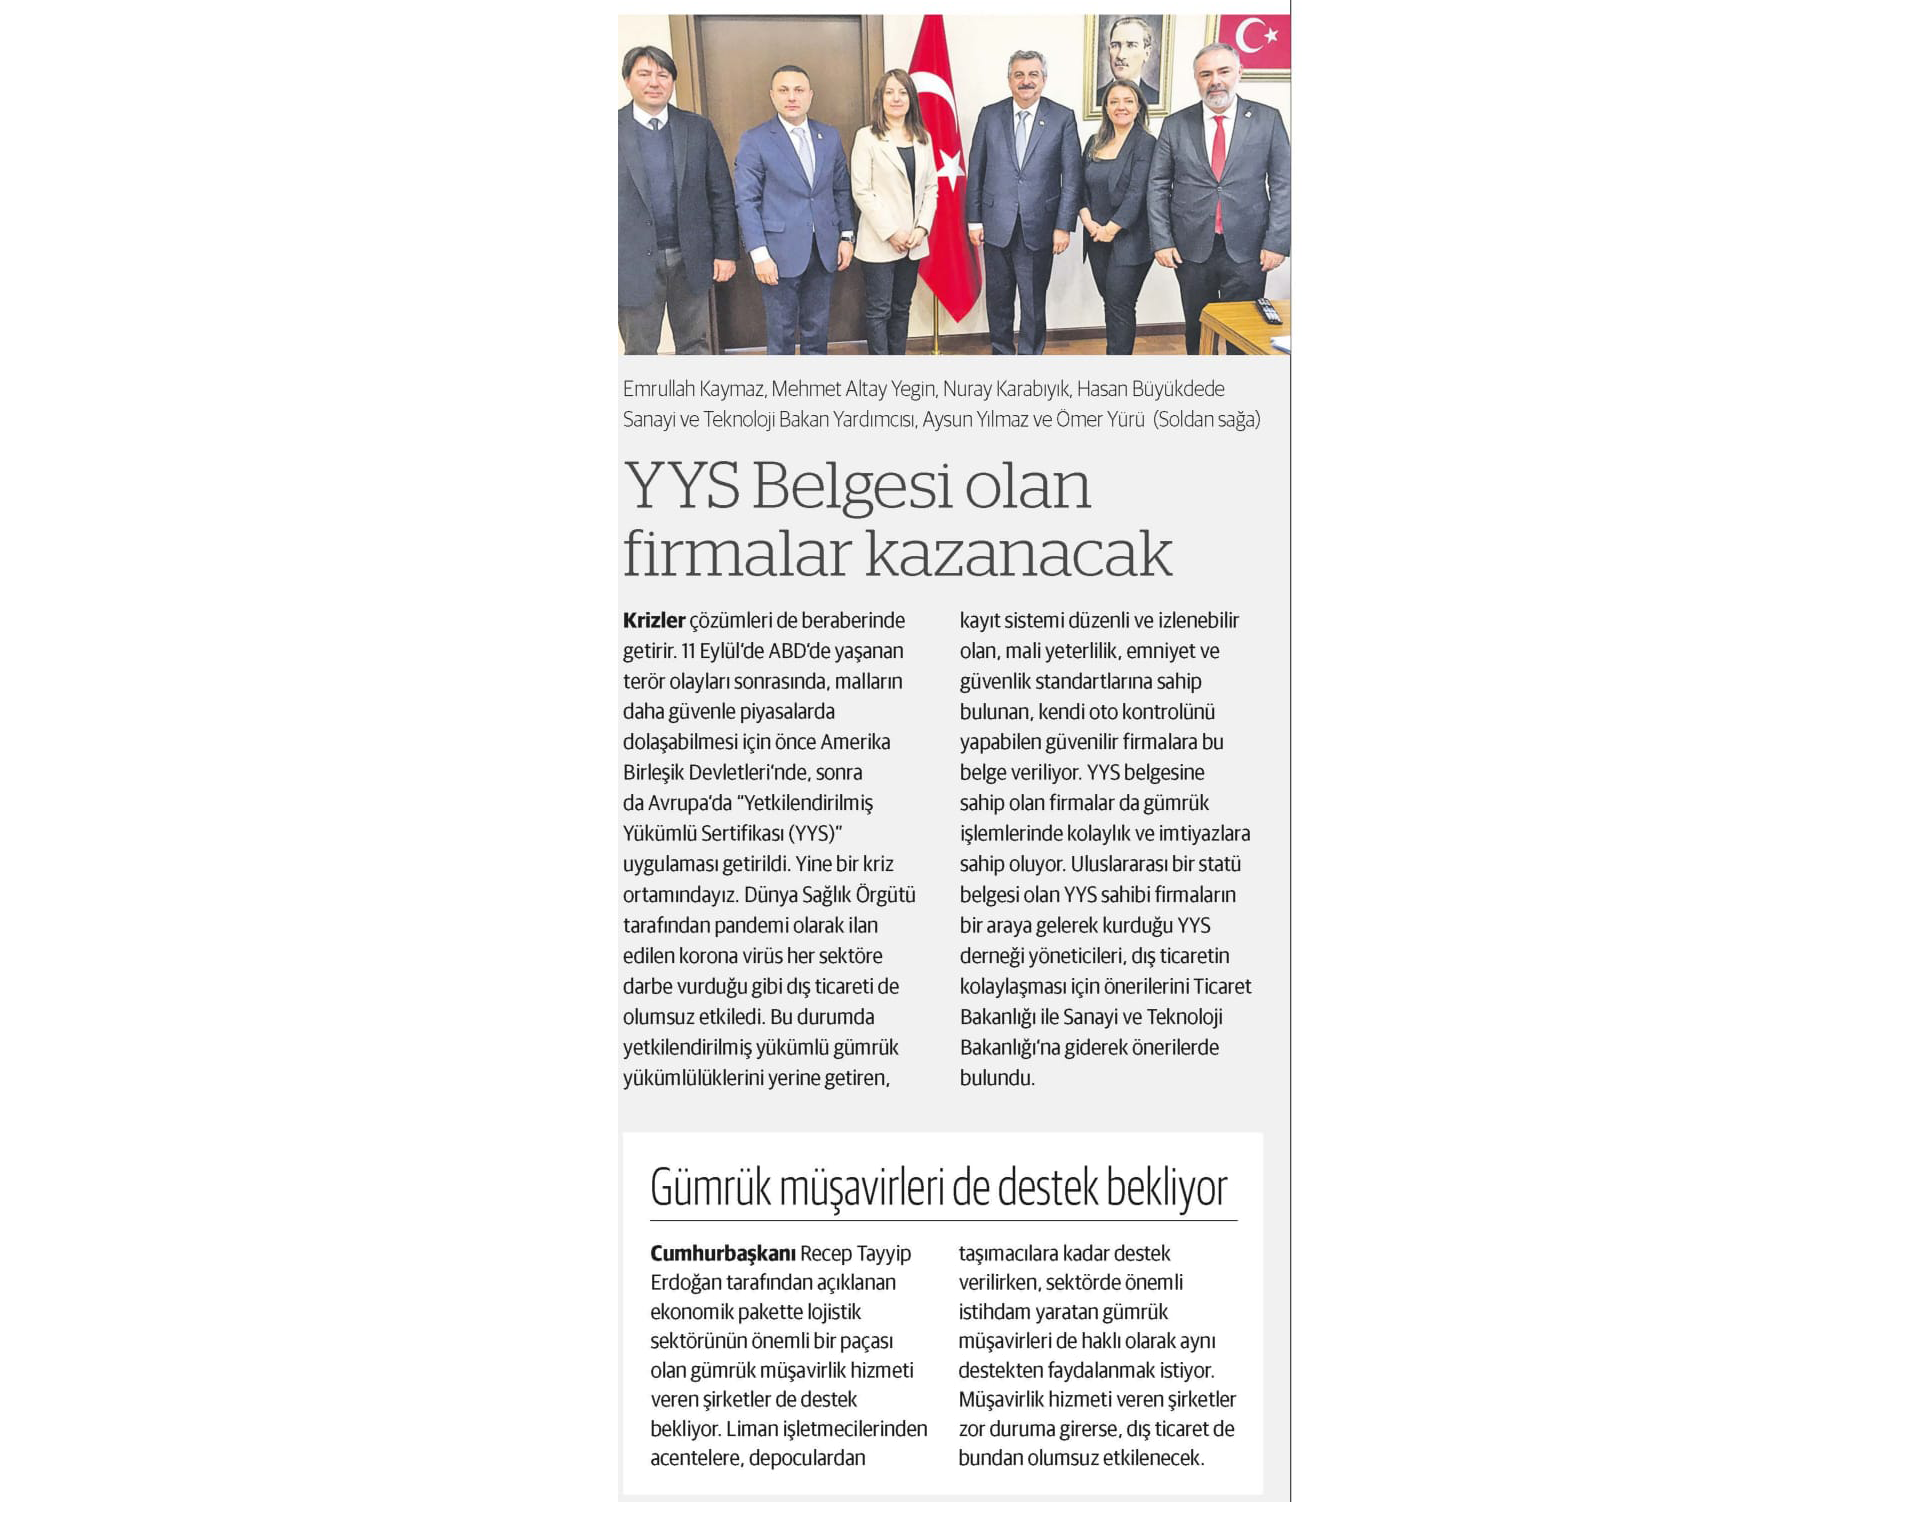 The jornalist of Dünya Newspaper, Mr. Sami ALTINKAYA, Has Written The Support We Have Given In His Article.